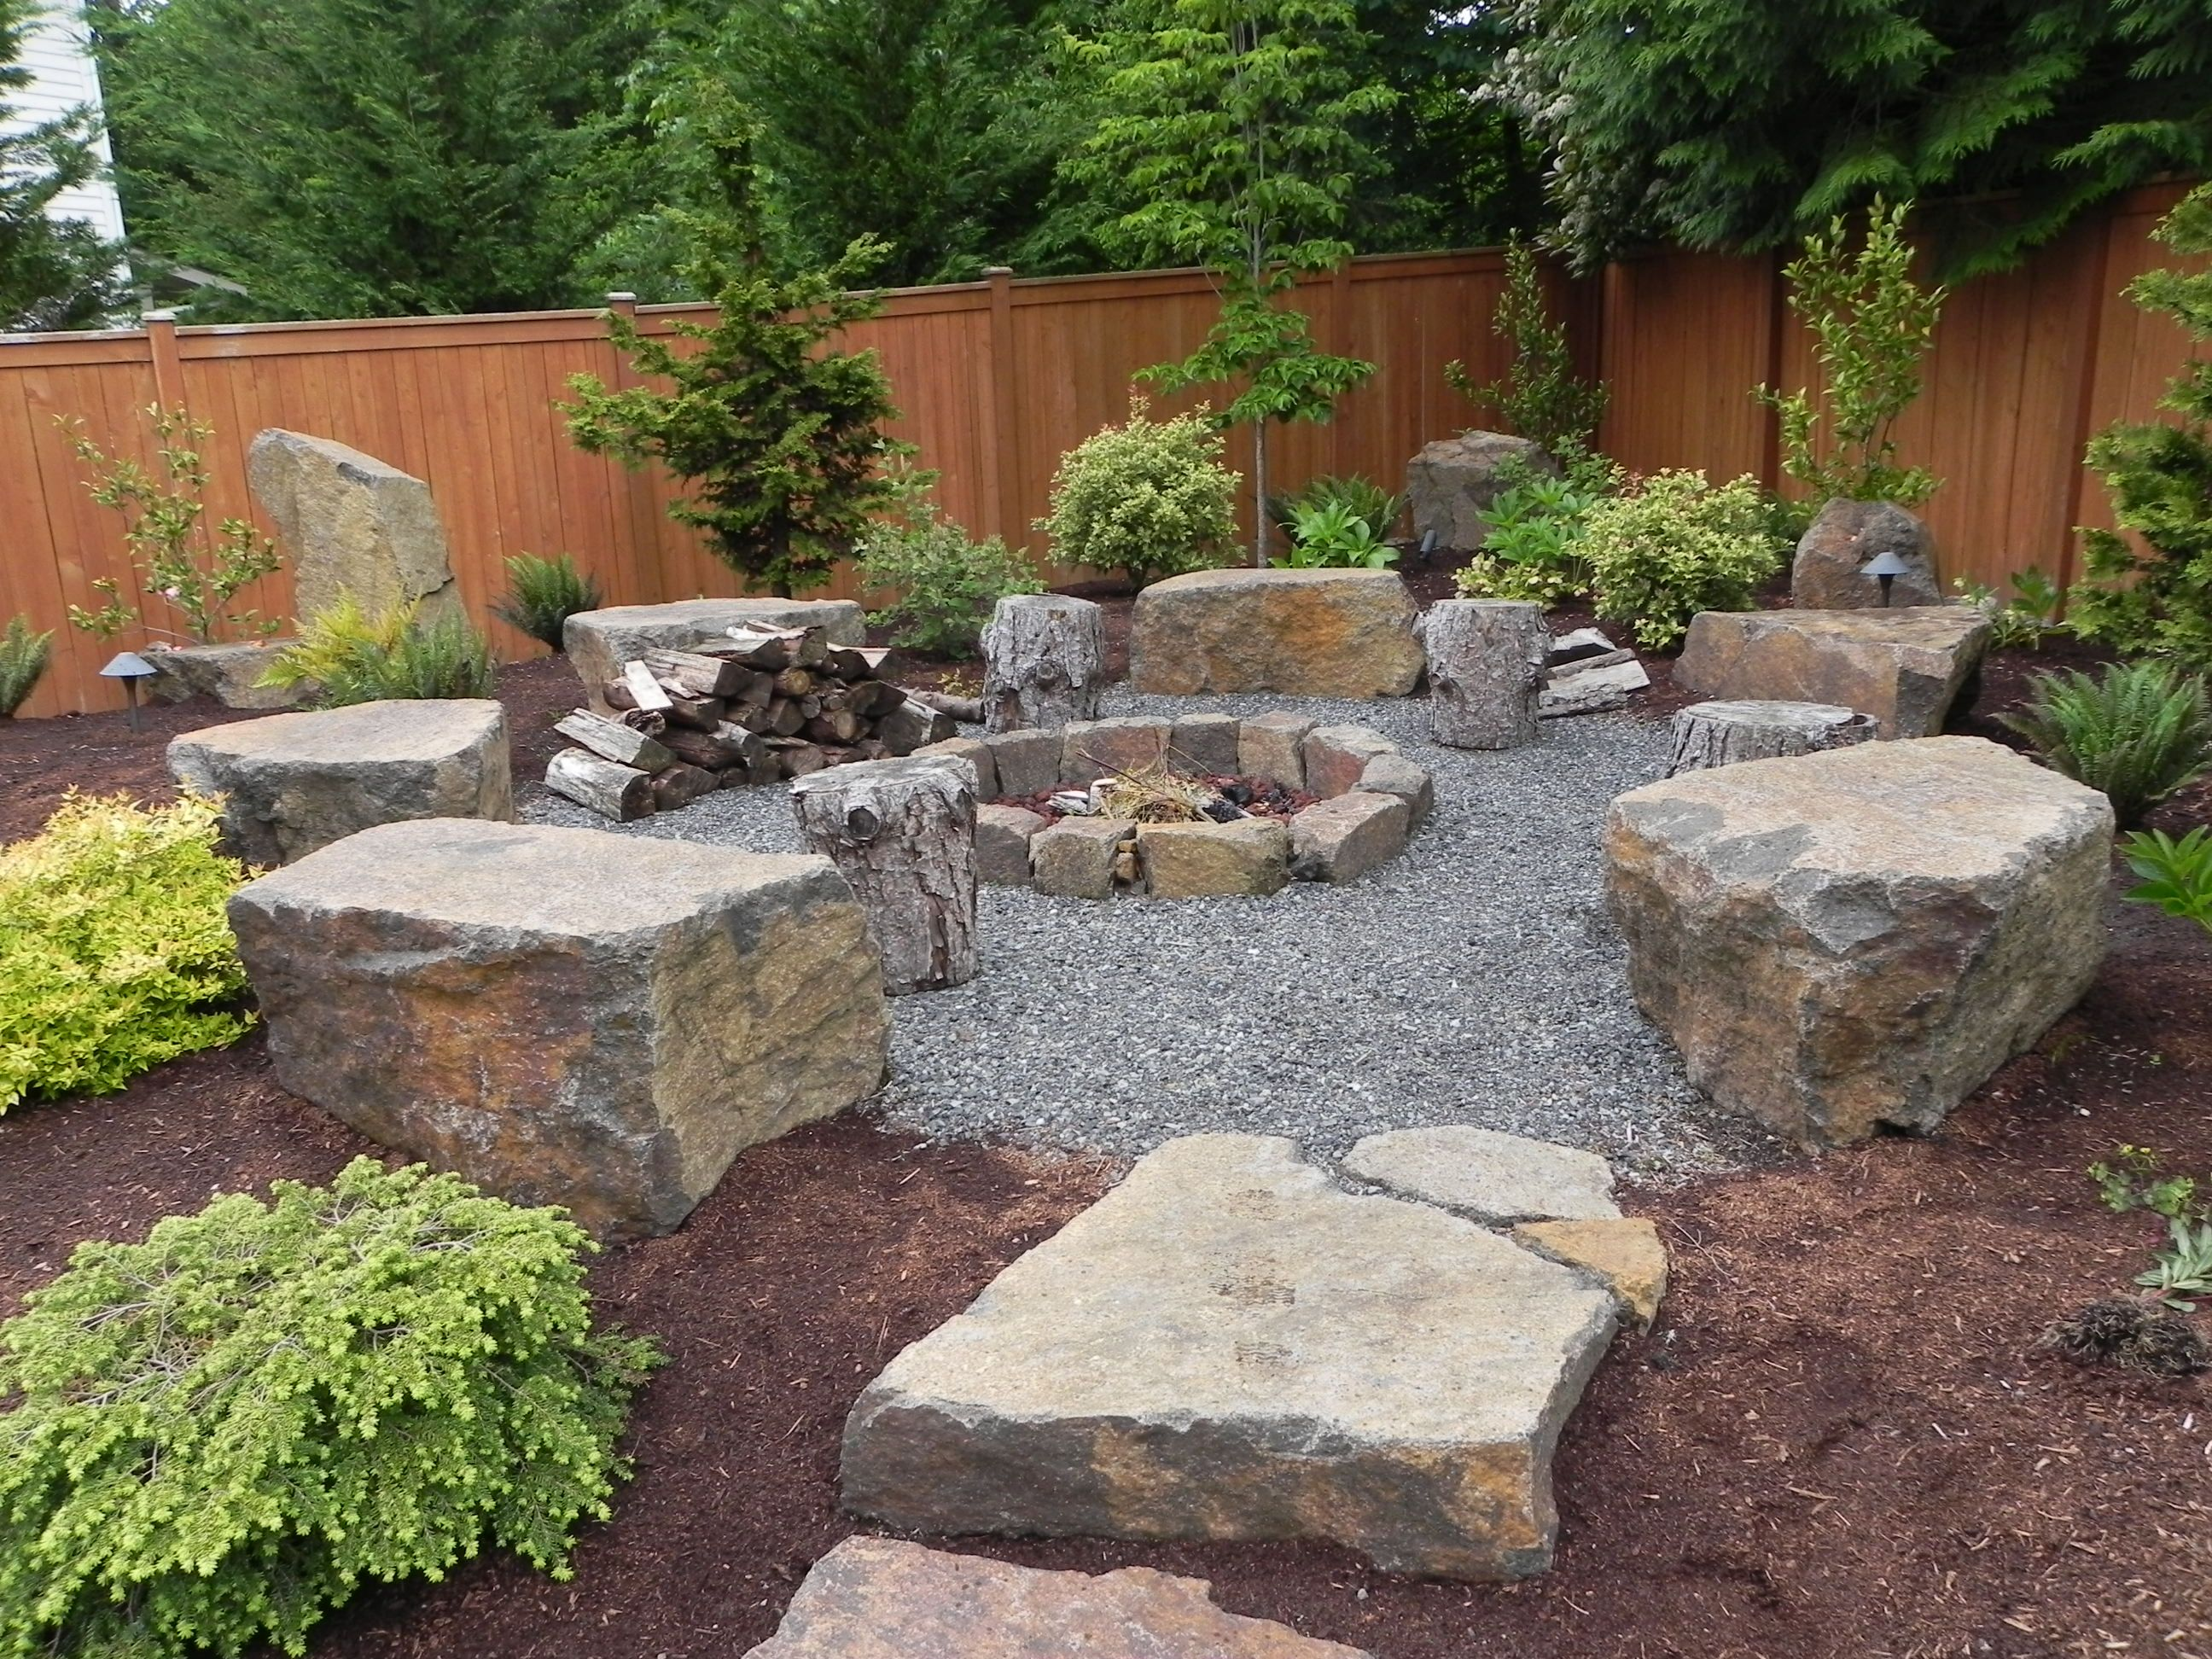 snohomish rock firepit sublime garden design landscape design landscape architecture serving seattle fire pit design - Fire Pit Design Ideas